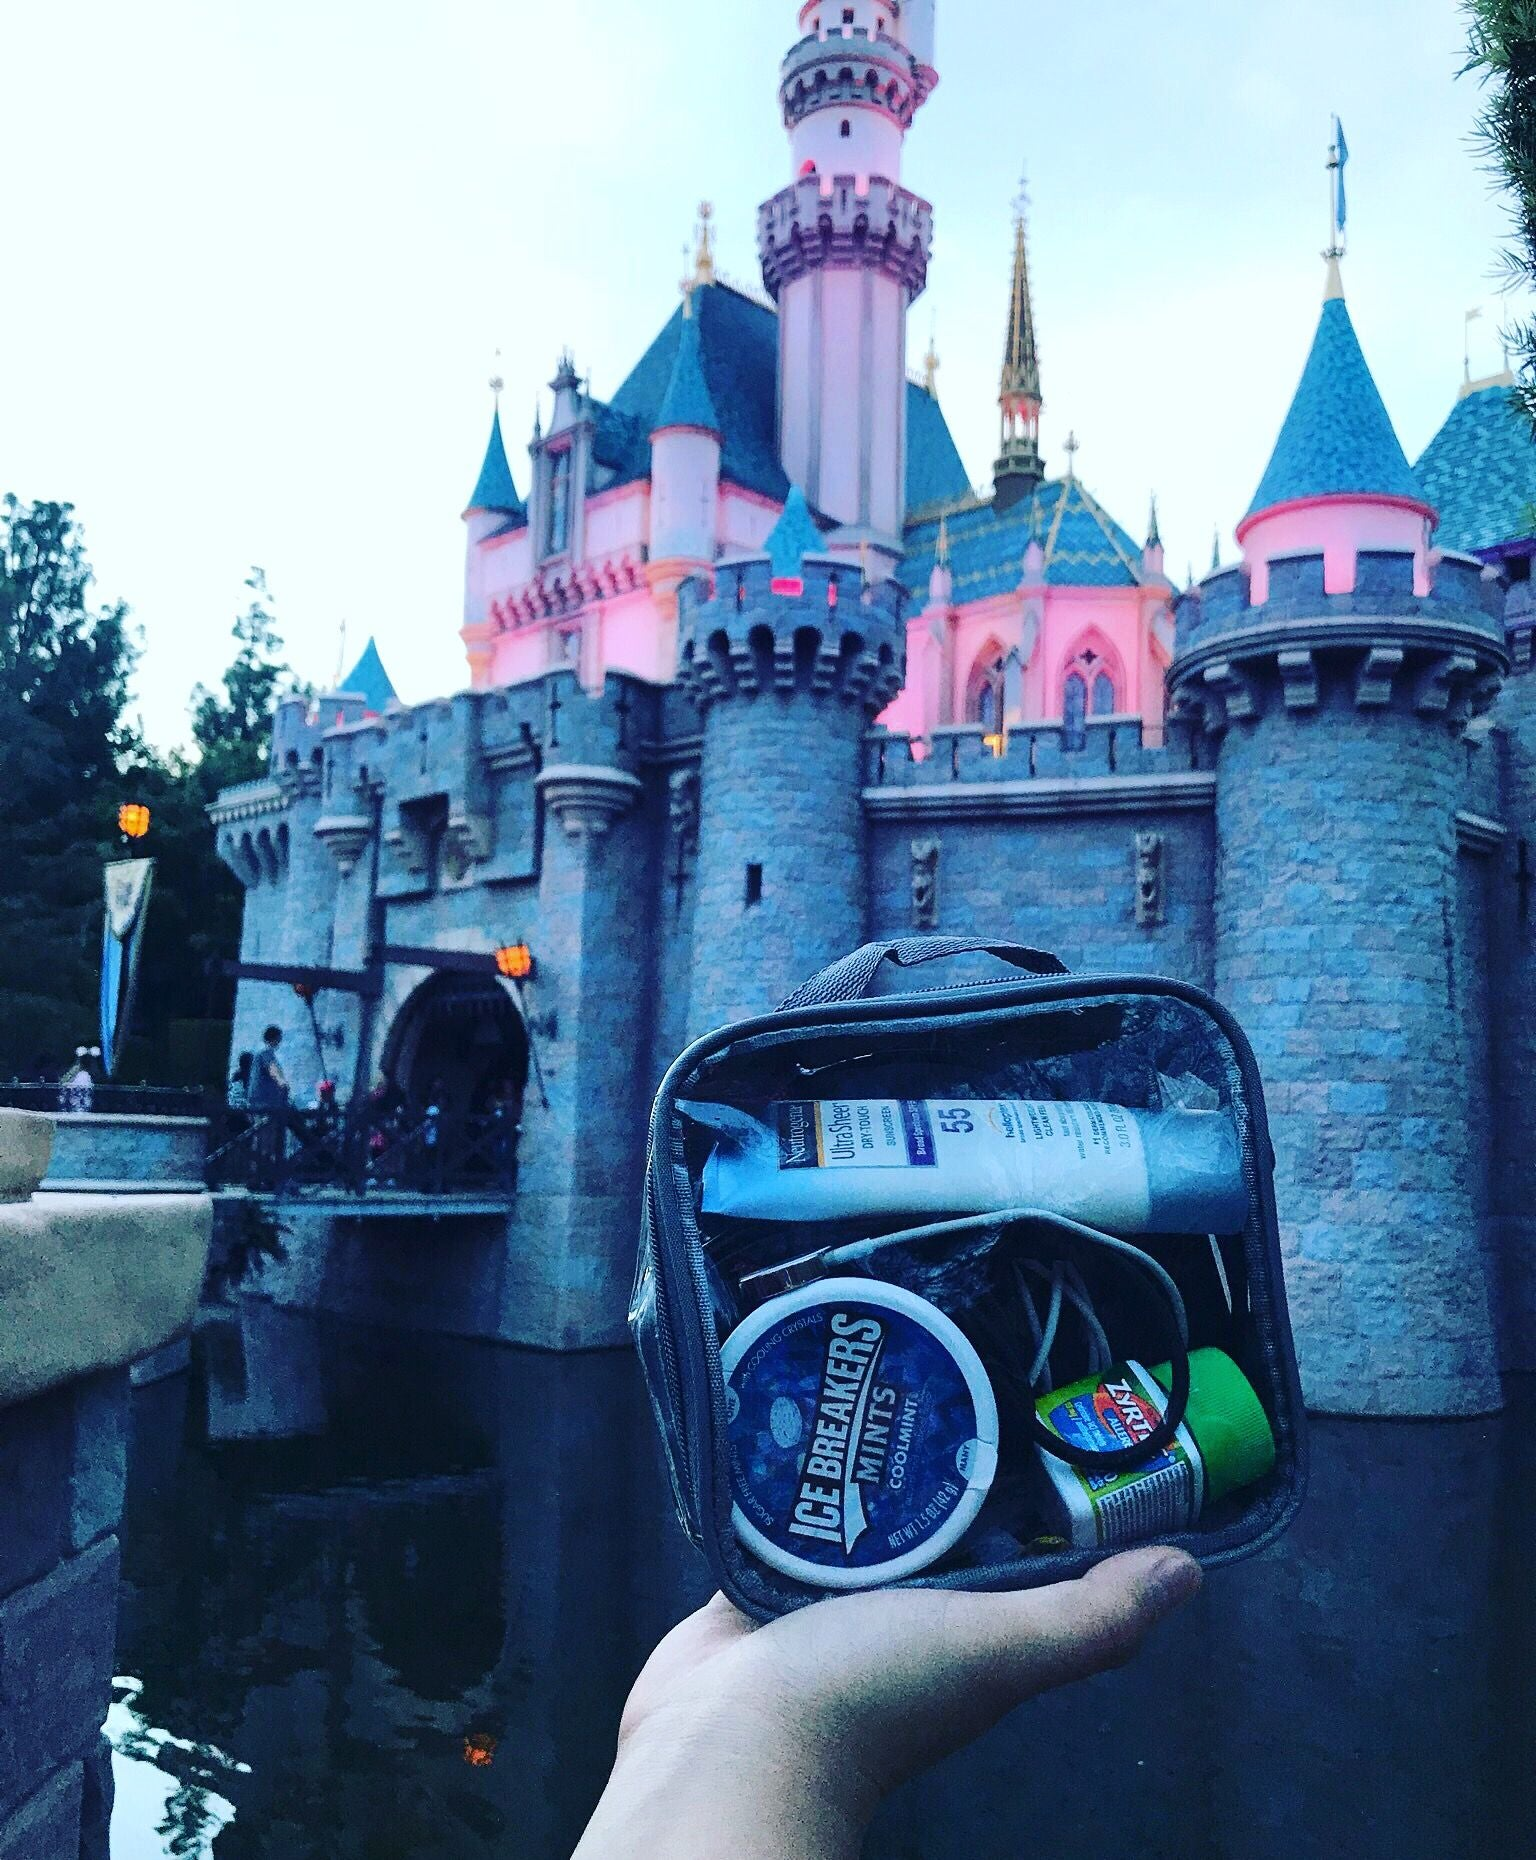 Disneyland hygiene kit in an extra small cube